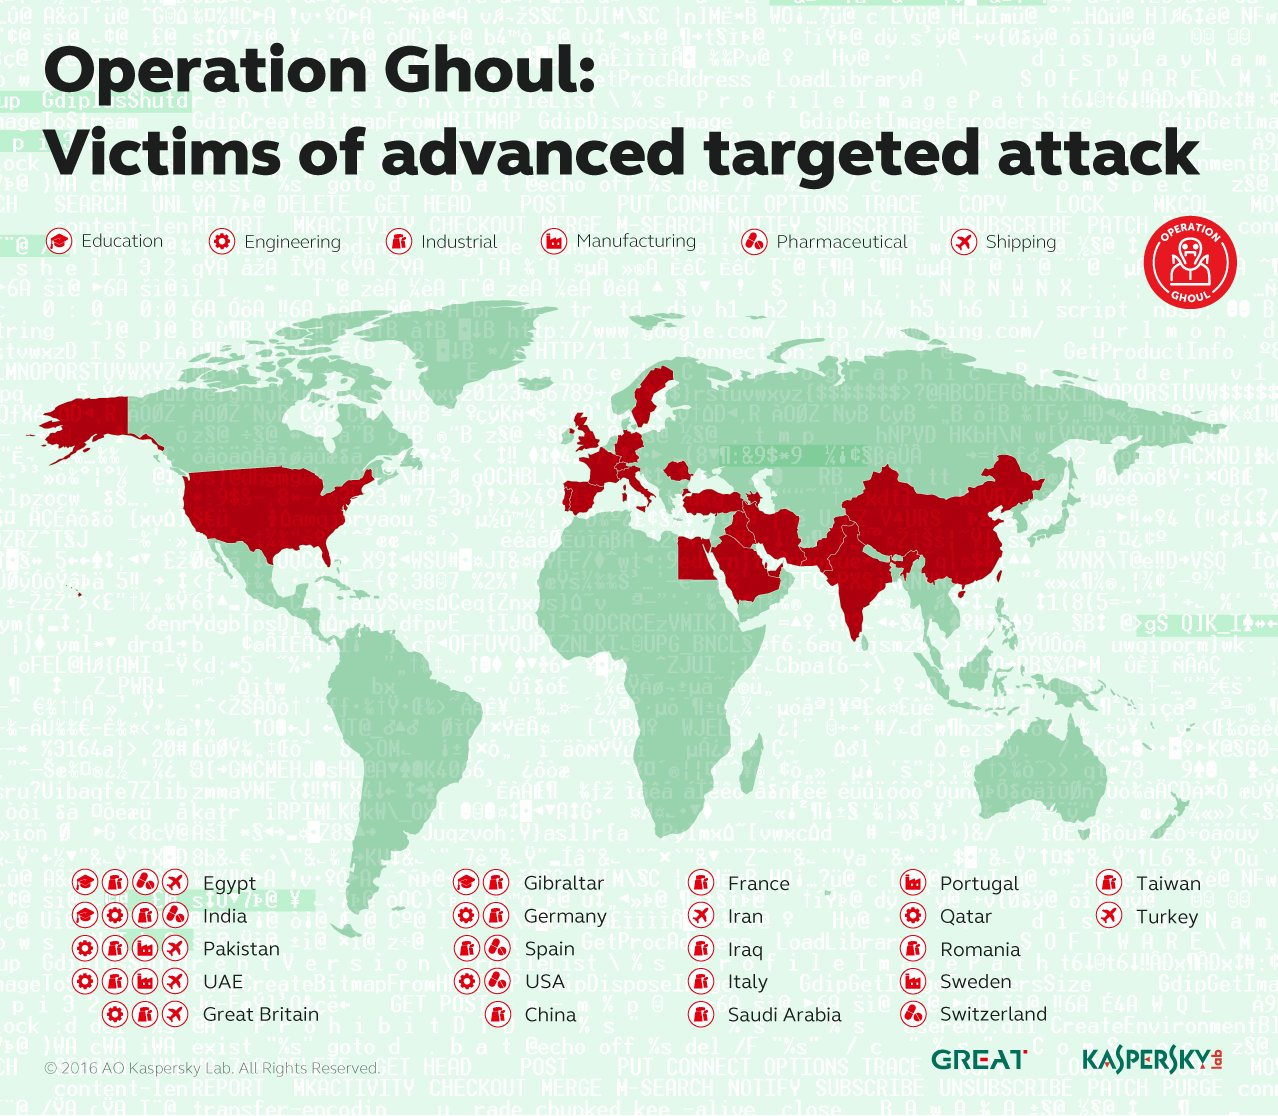 Operation Ghoul cyber attack targets by country and organization type (photo credit: Kaspersky Labs)